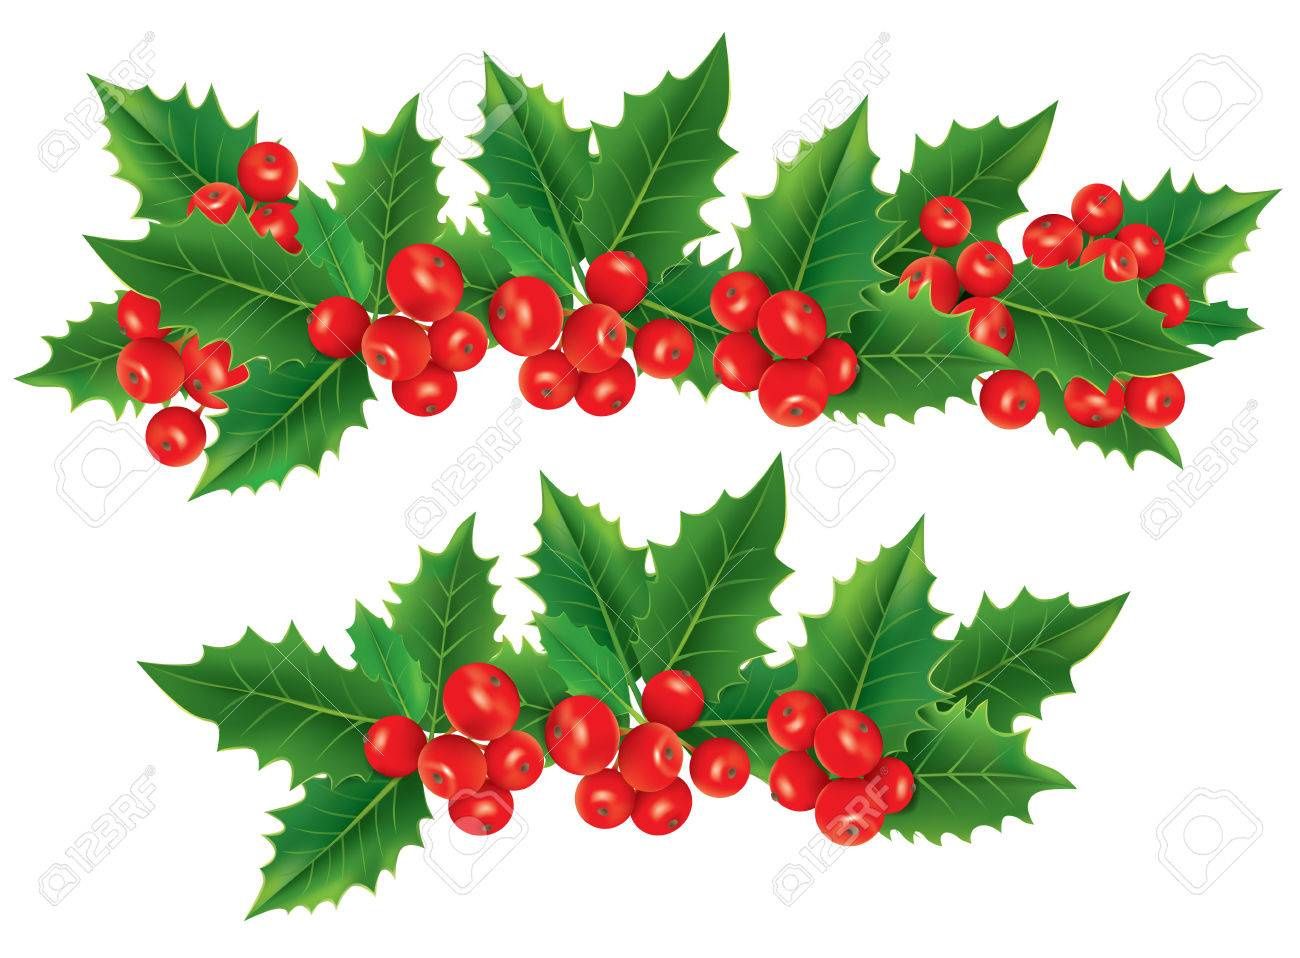 Christmas Garland Of Holly Berries Contains Transparent Objects